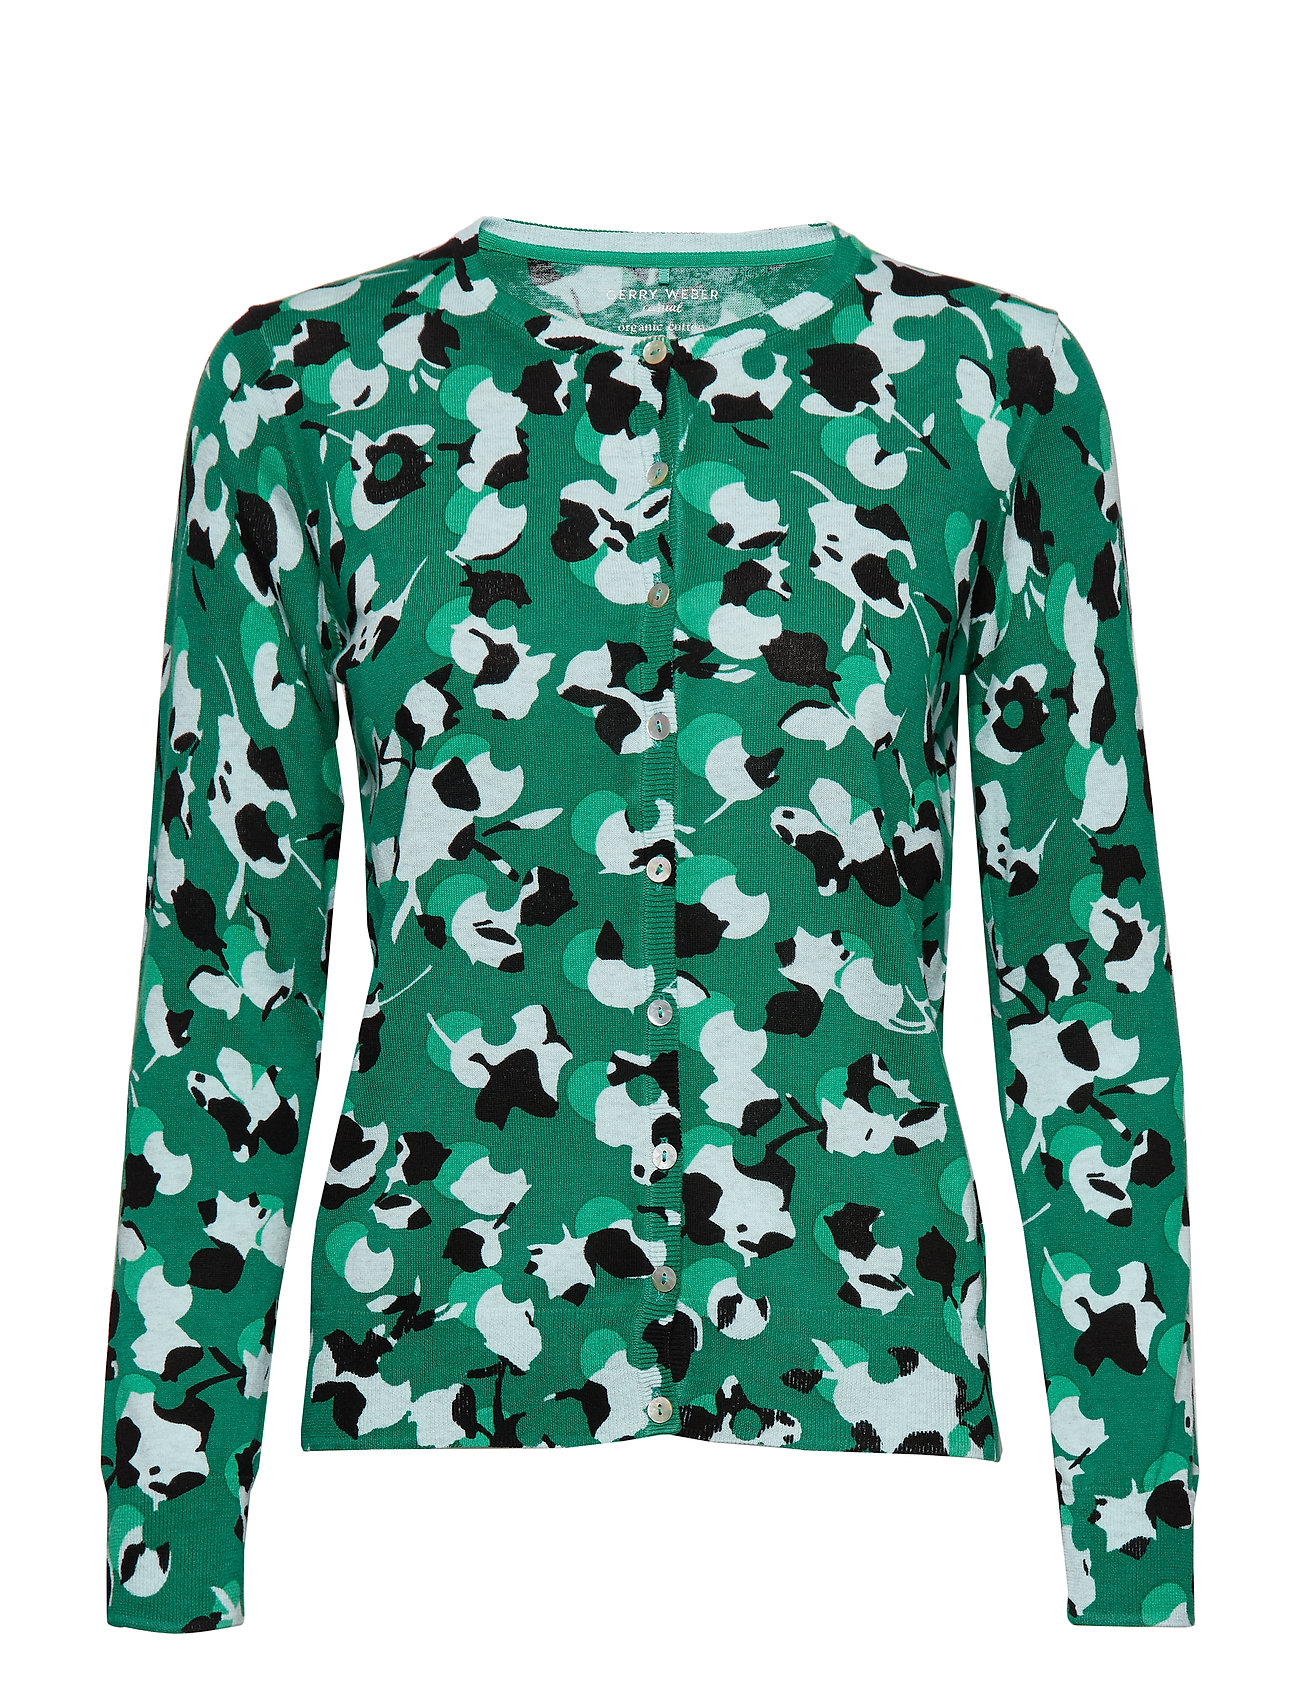 Gerry Weber Edition JACKET KNITWEAR - GREEN PRINT